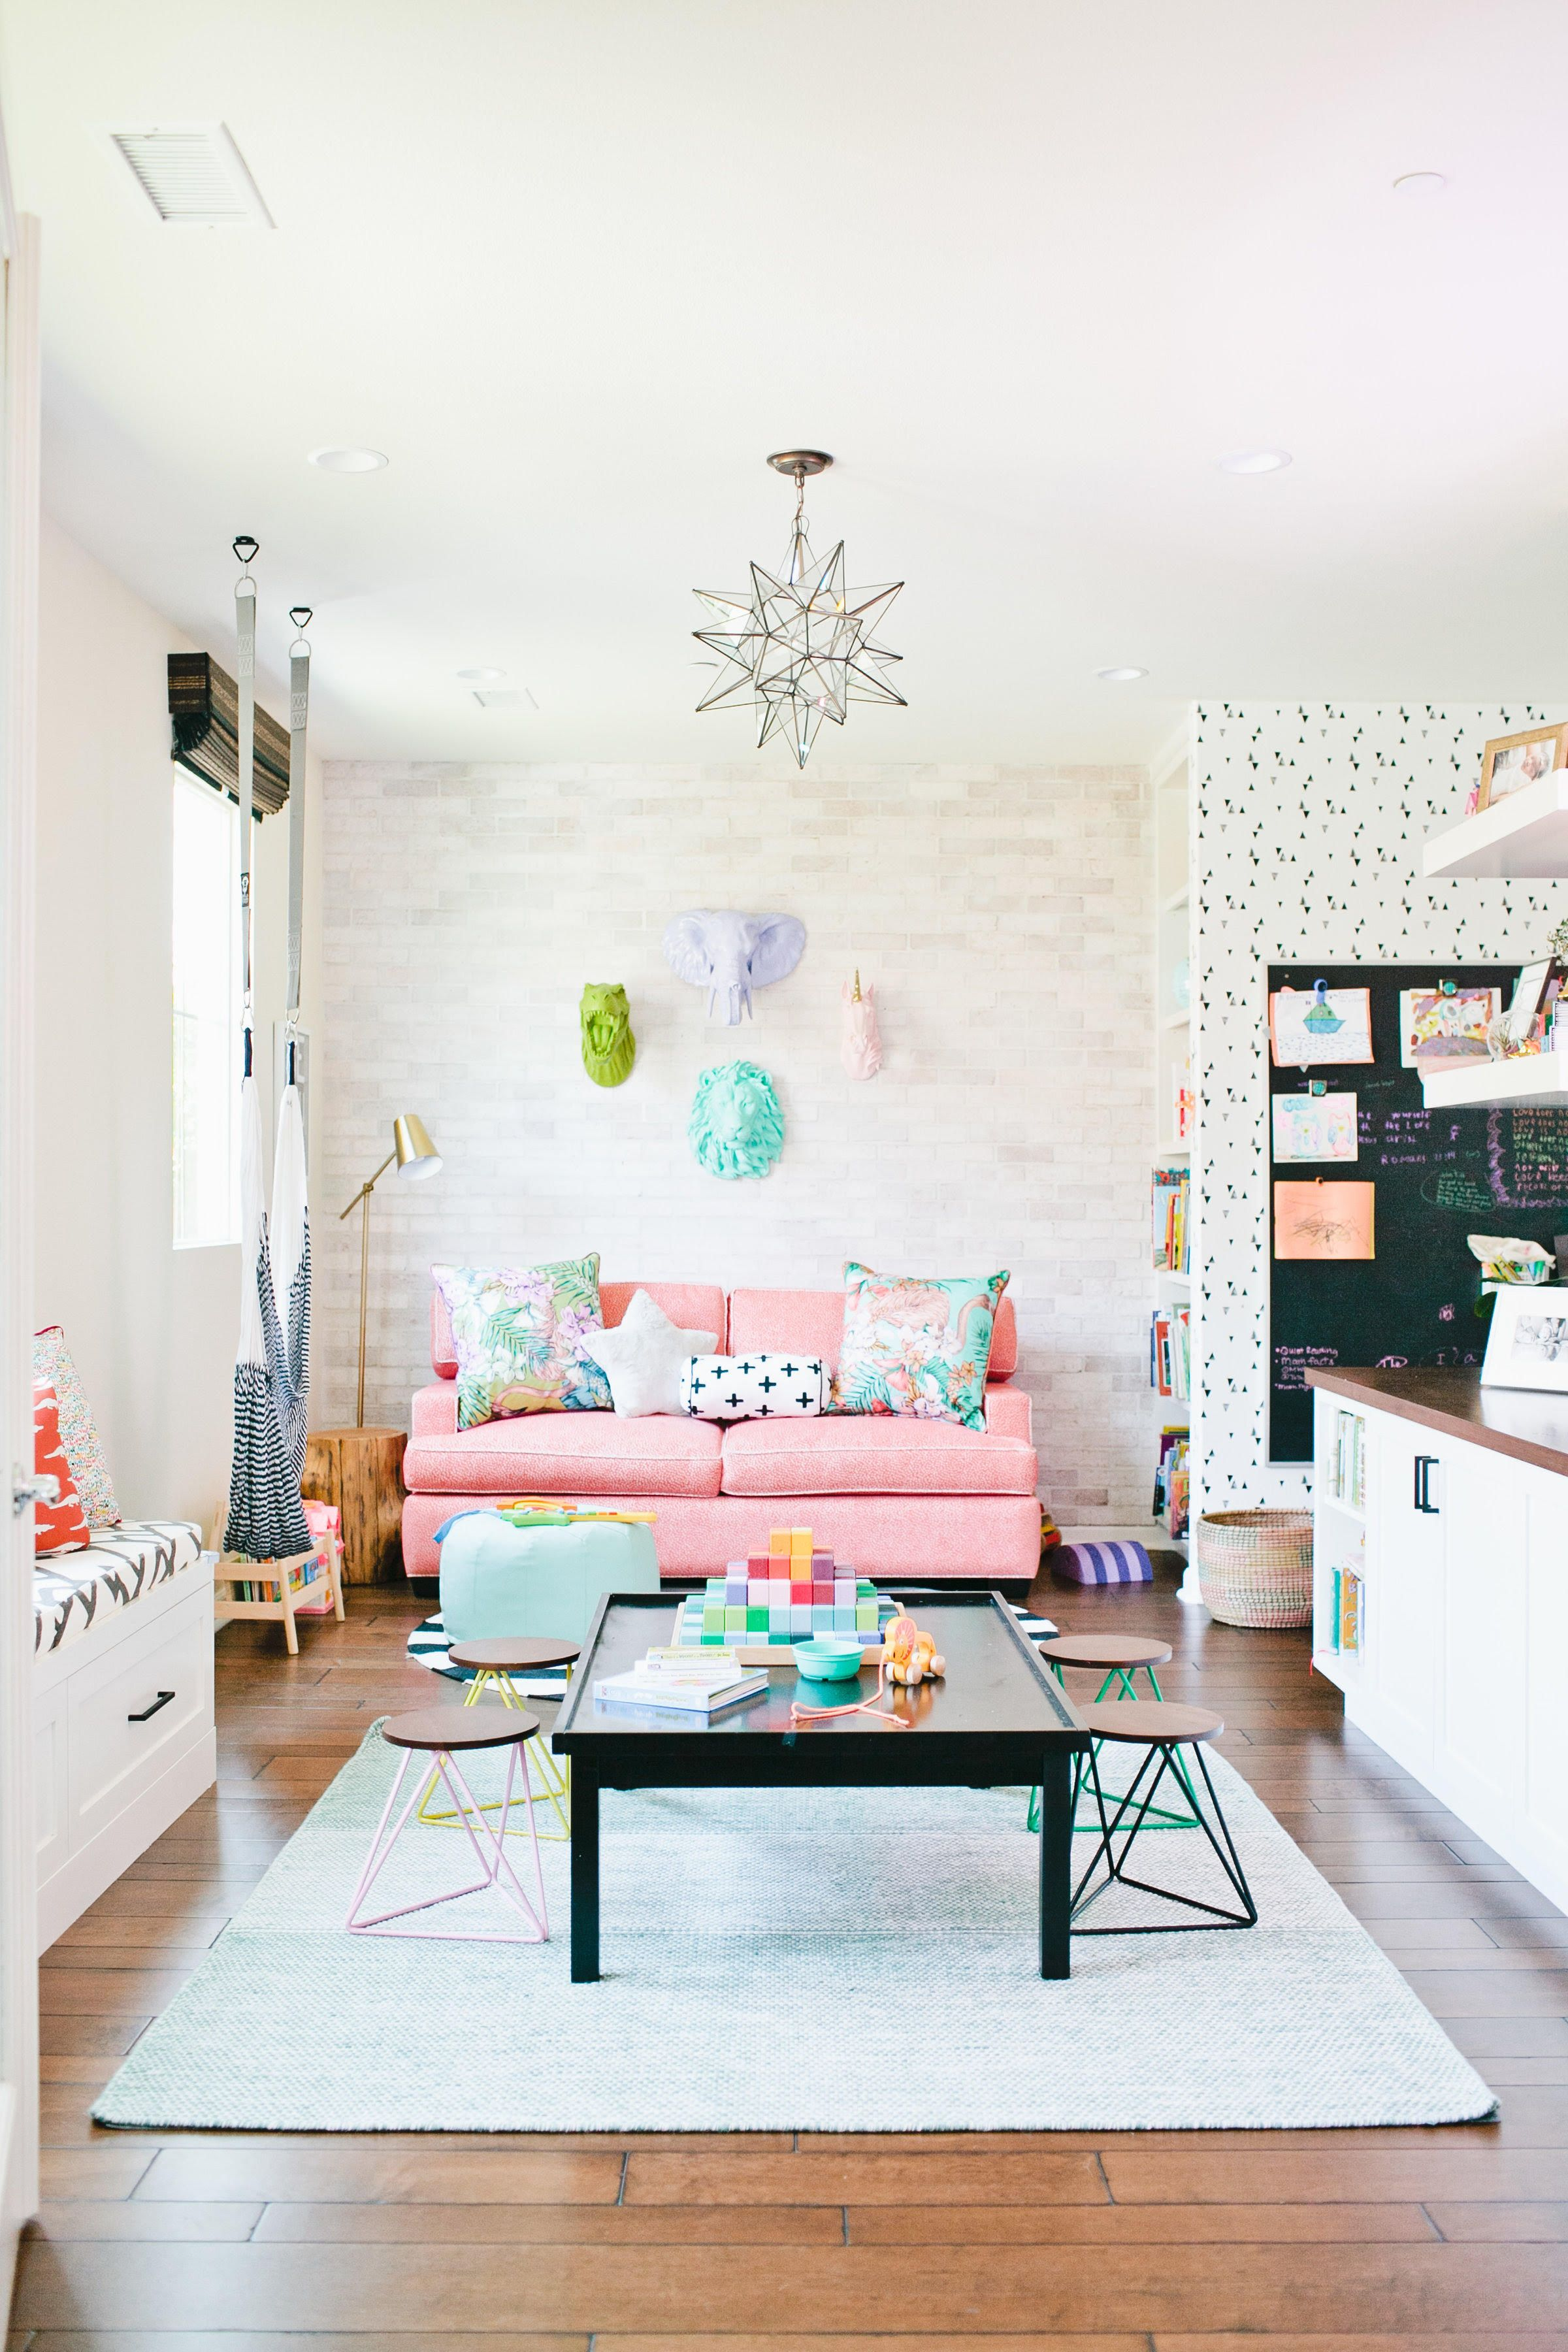 Pin By Tonya Ford On E's Room | Living Room Playroom, Kids